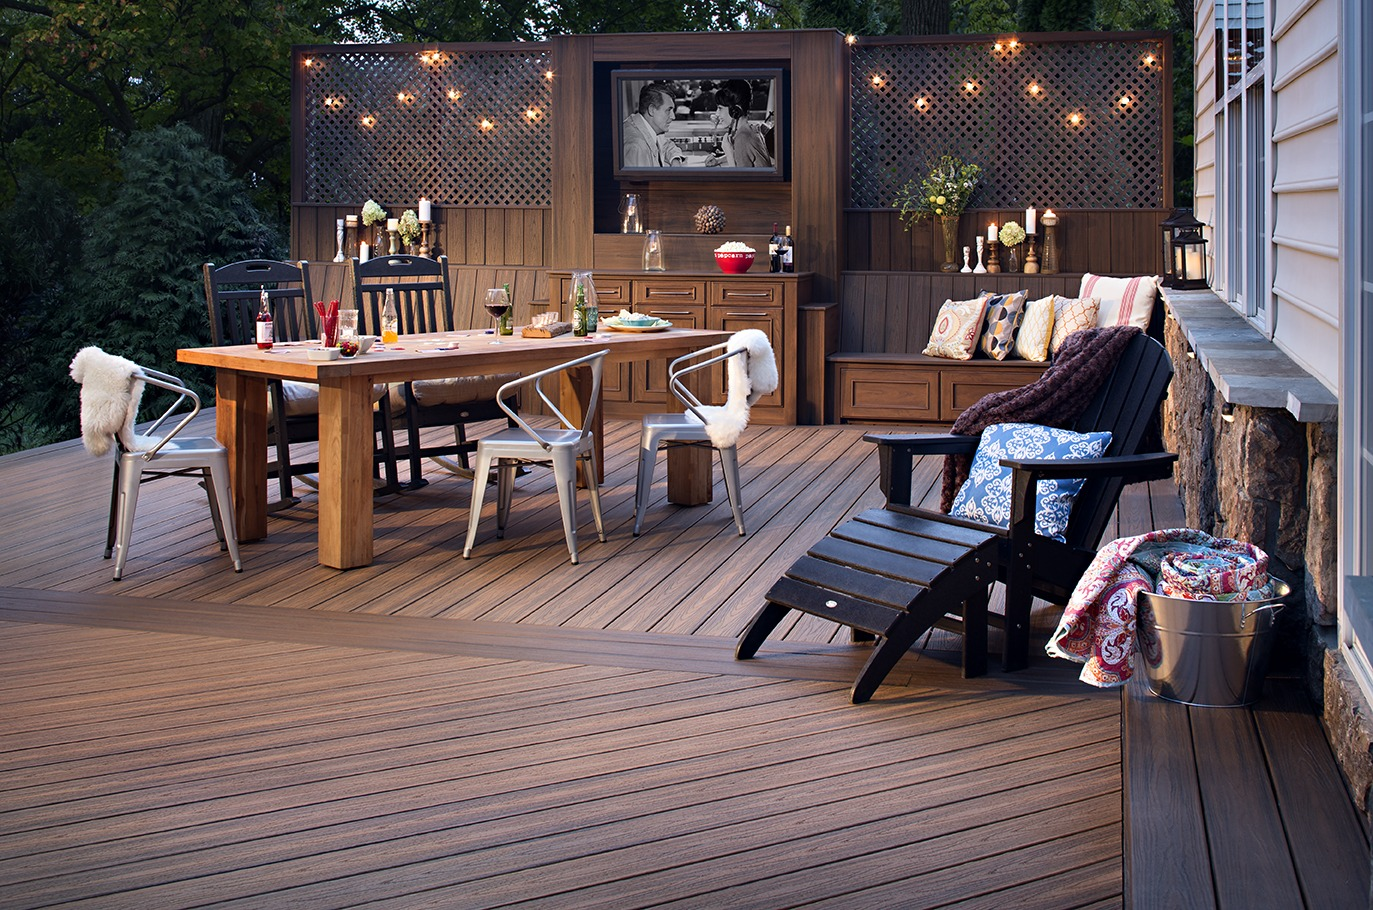 Accent Rex Meubles Outdoor Living Trex Decking Top 5 Trends For Spring